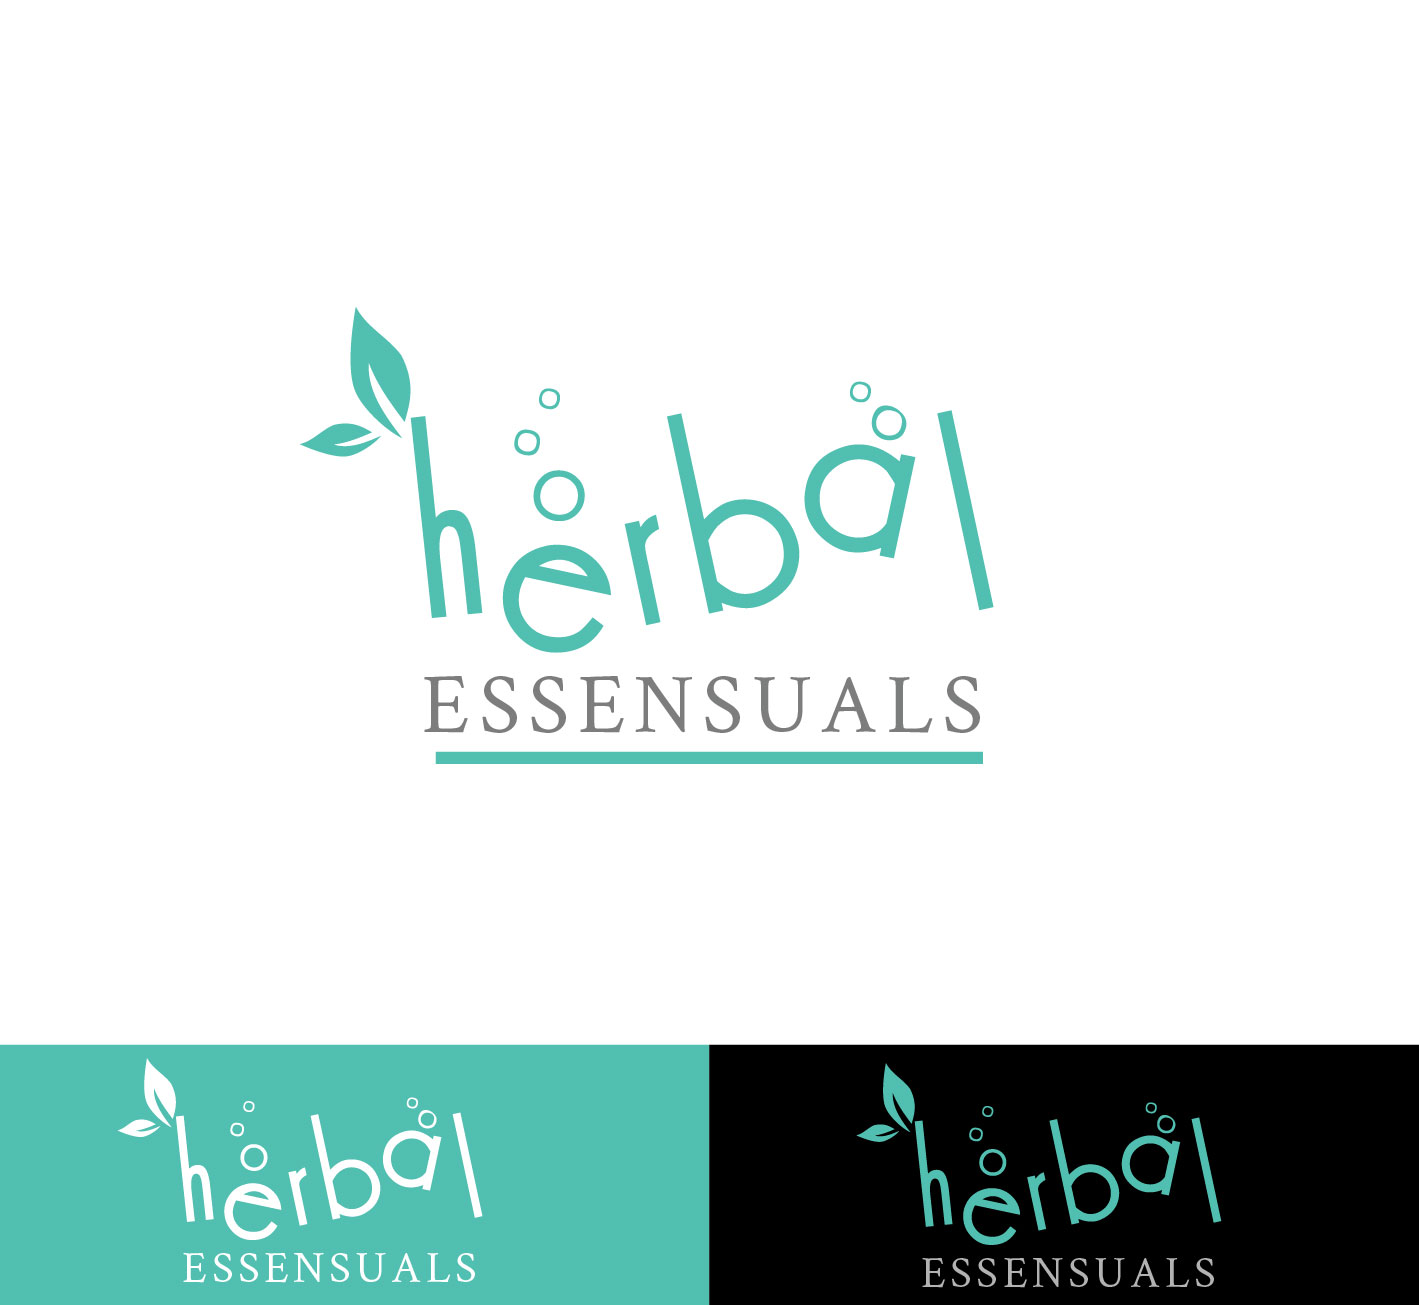 Logo Design by Darina Dimitrova - Entry No. 9 in the Logo Design Contest Captivating Logo Design for Herbal Essensuals.